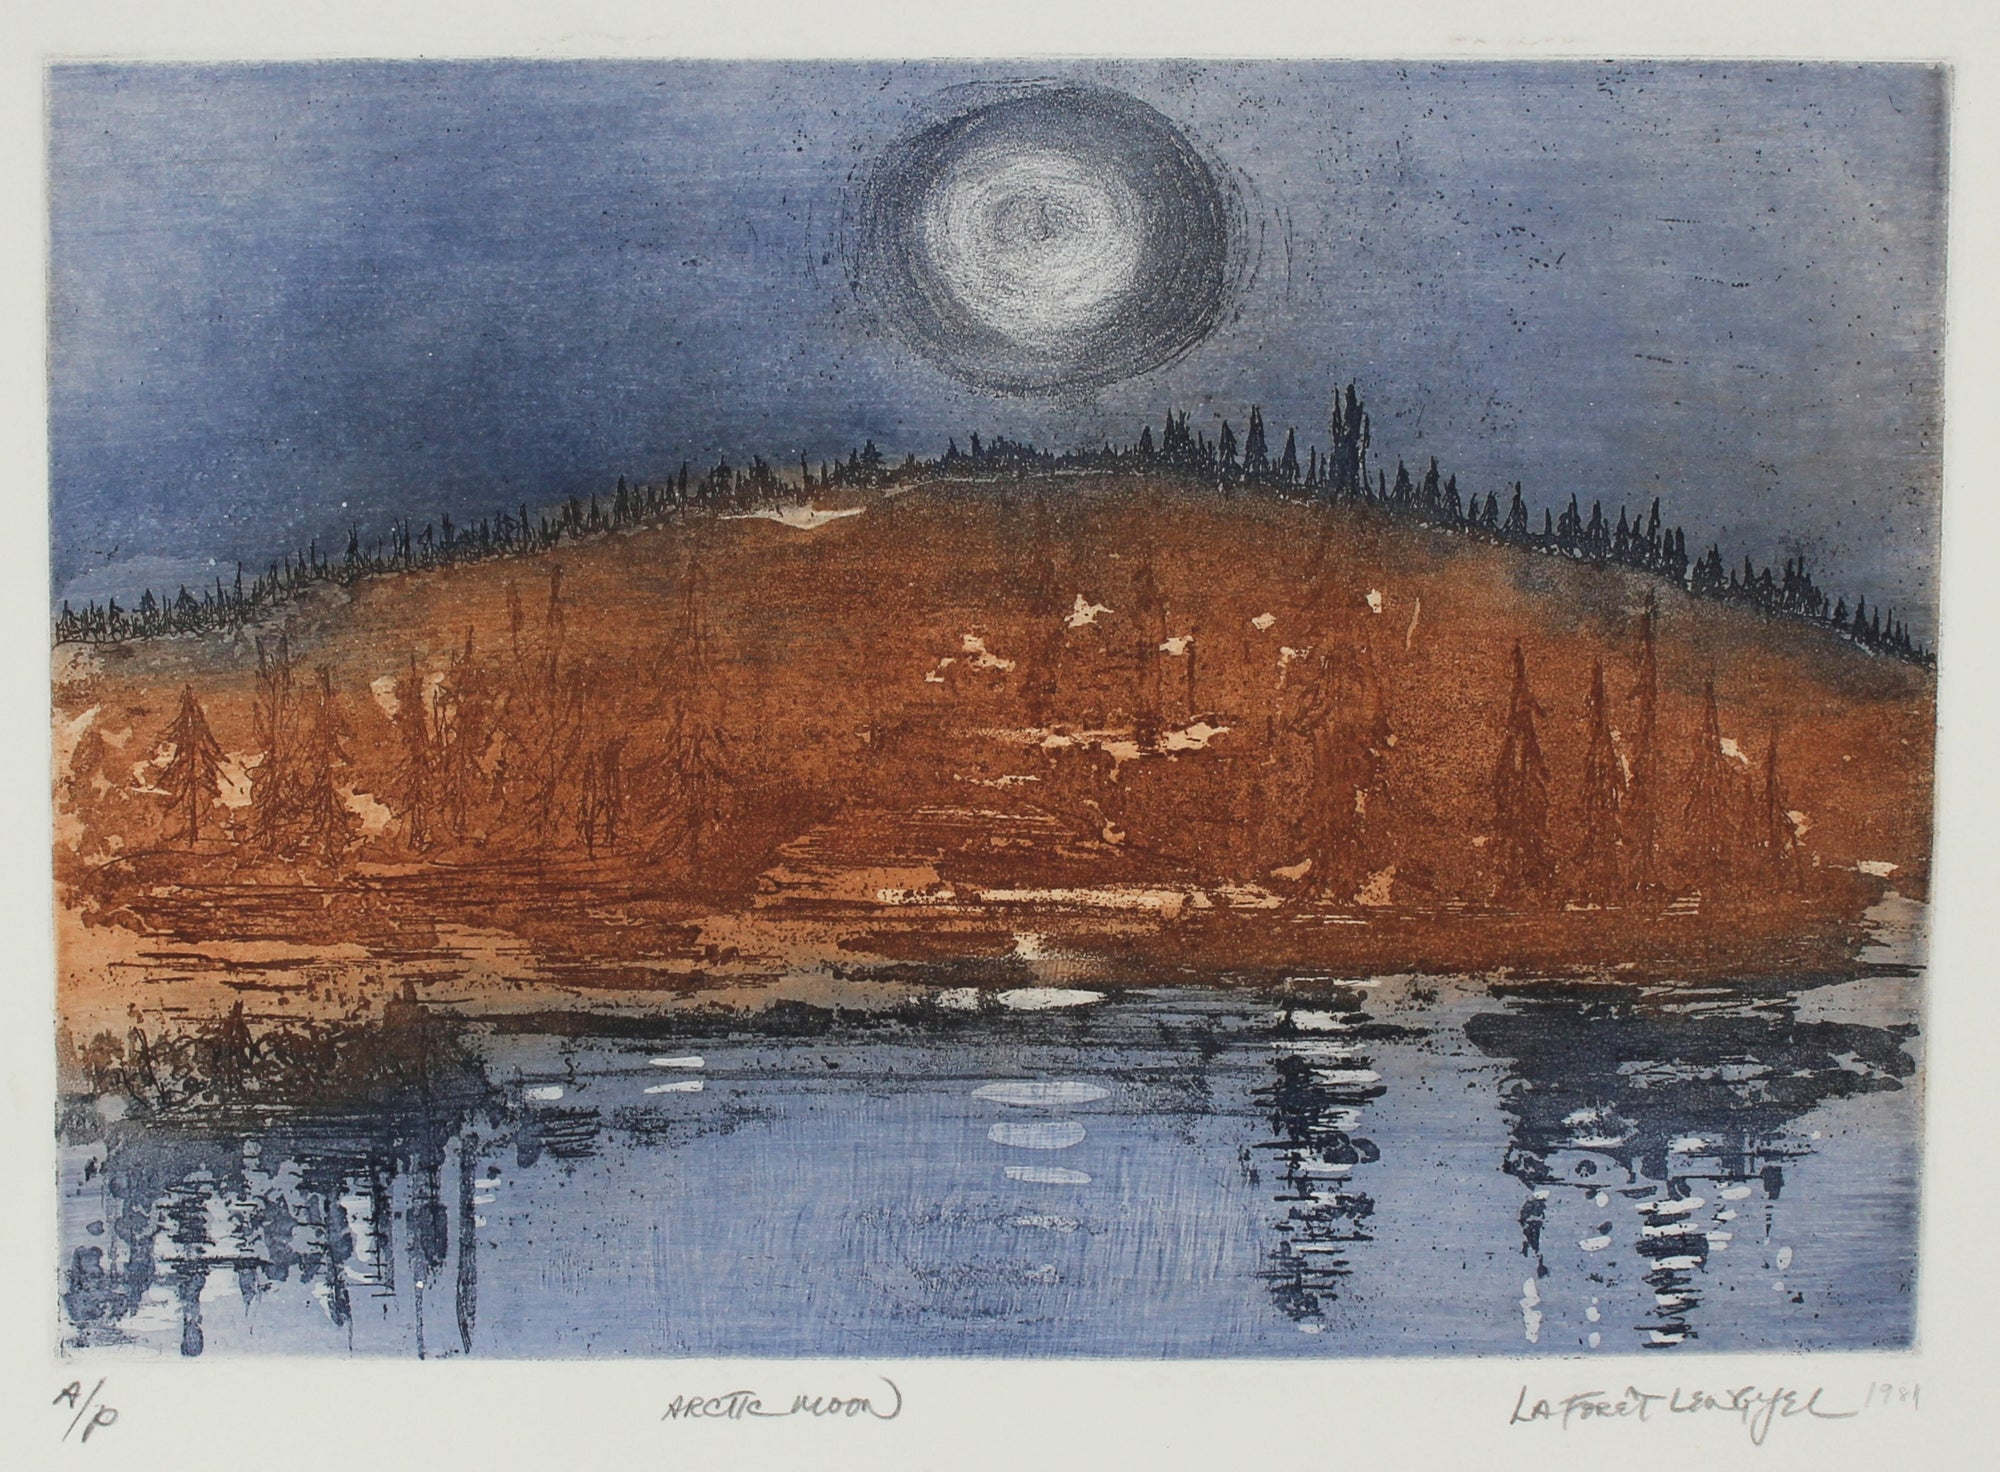 <i>Artic Moon</i><br>1981 Landscape Etching<br><br>#57255